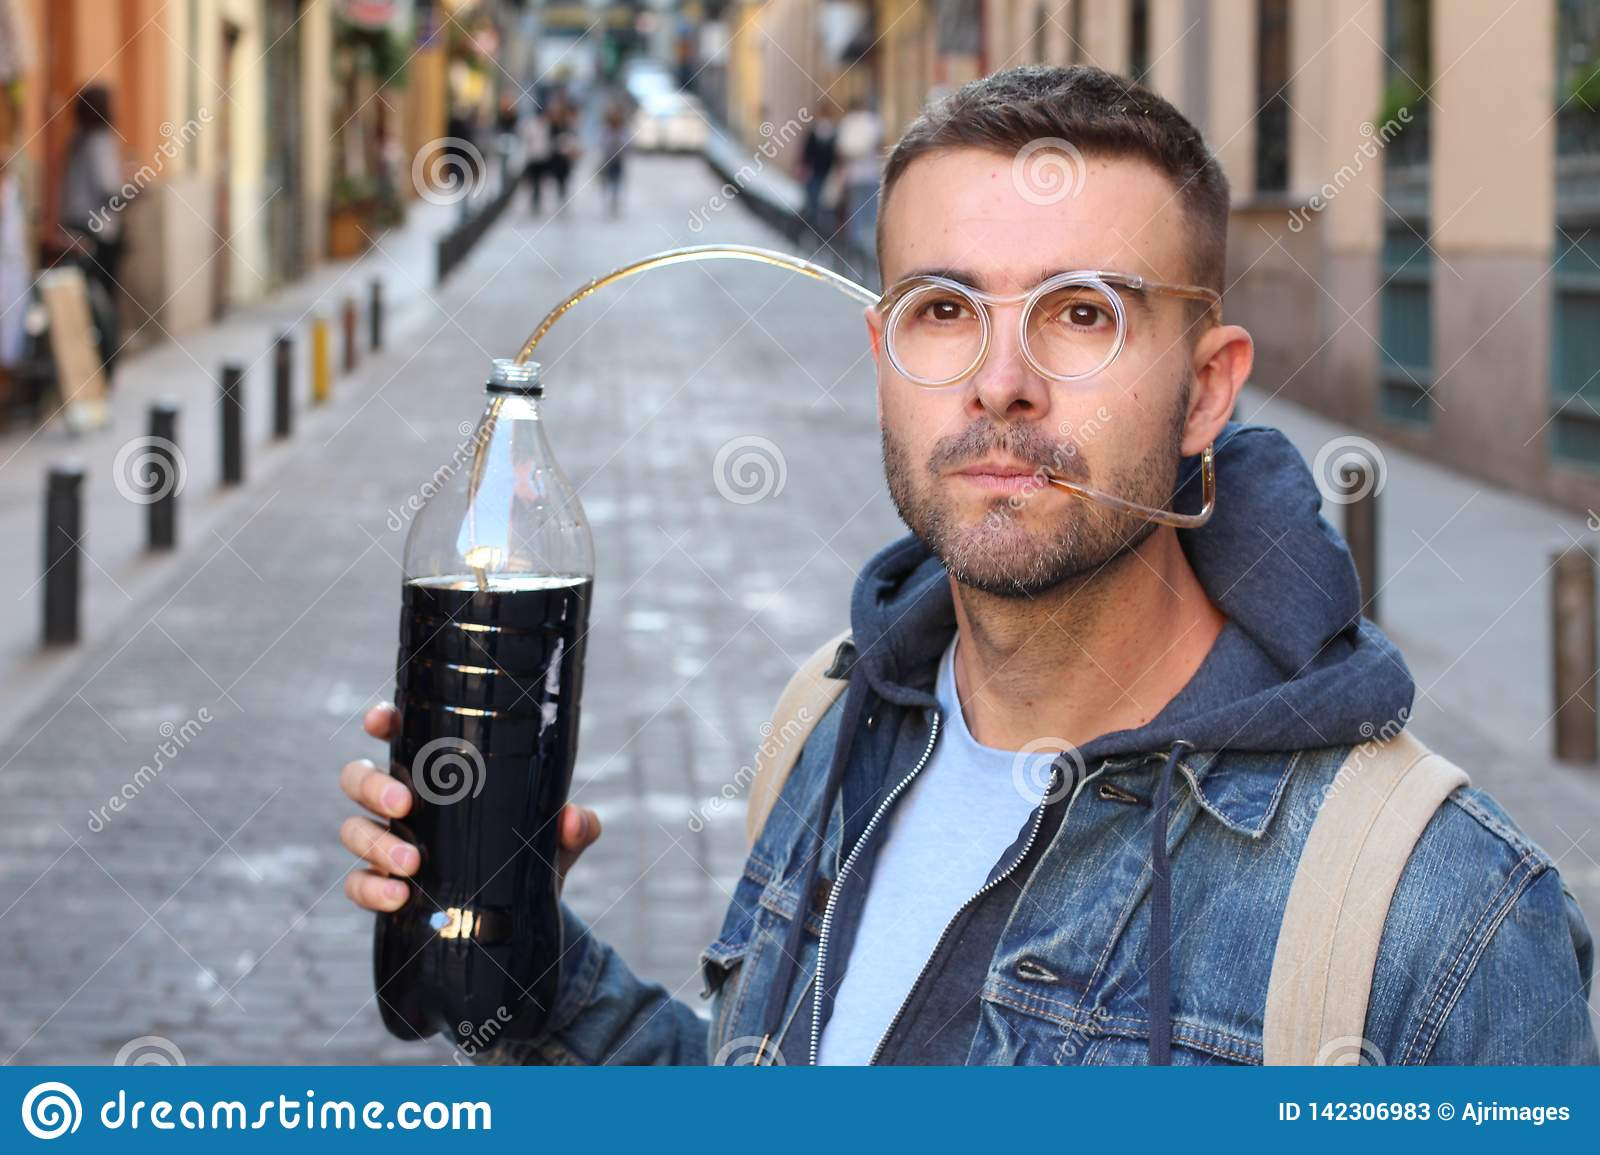 Funny pic of man addicted to soda